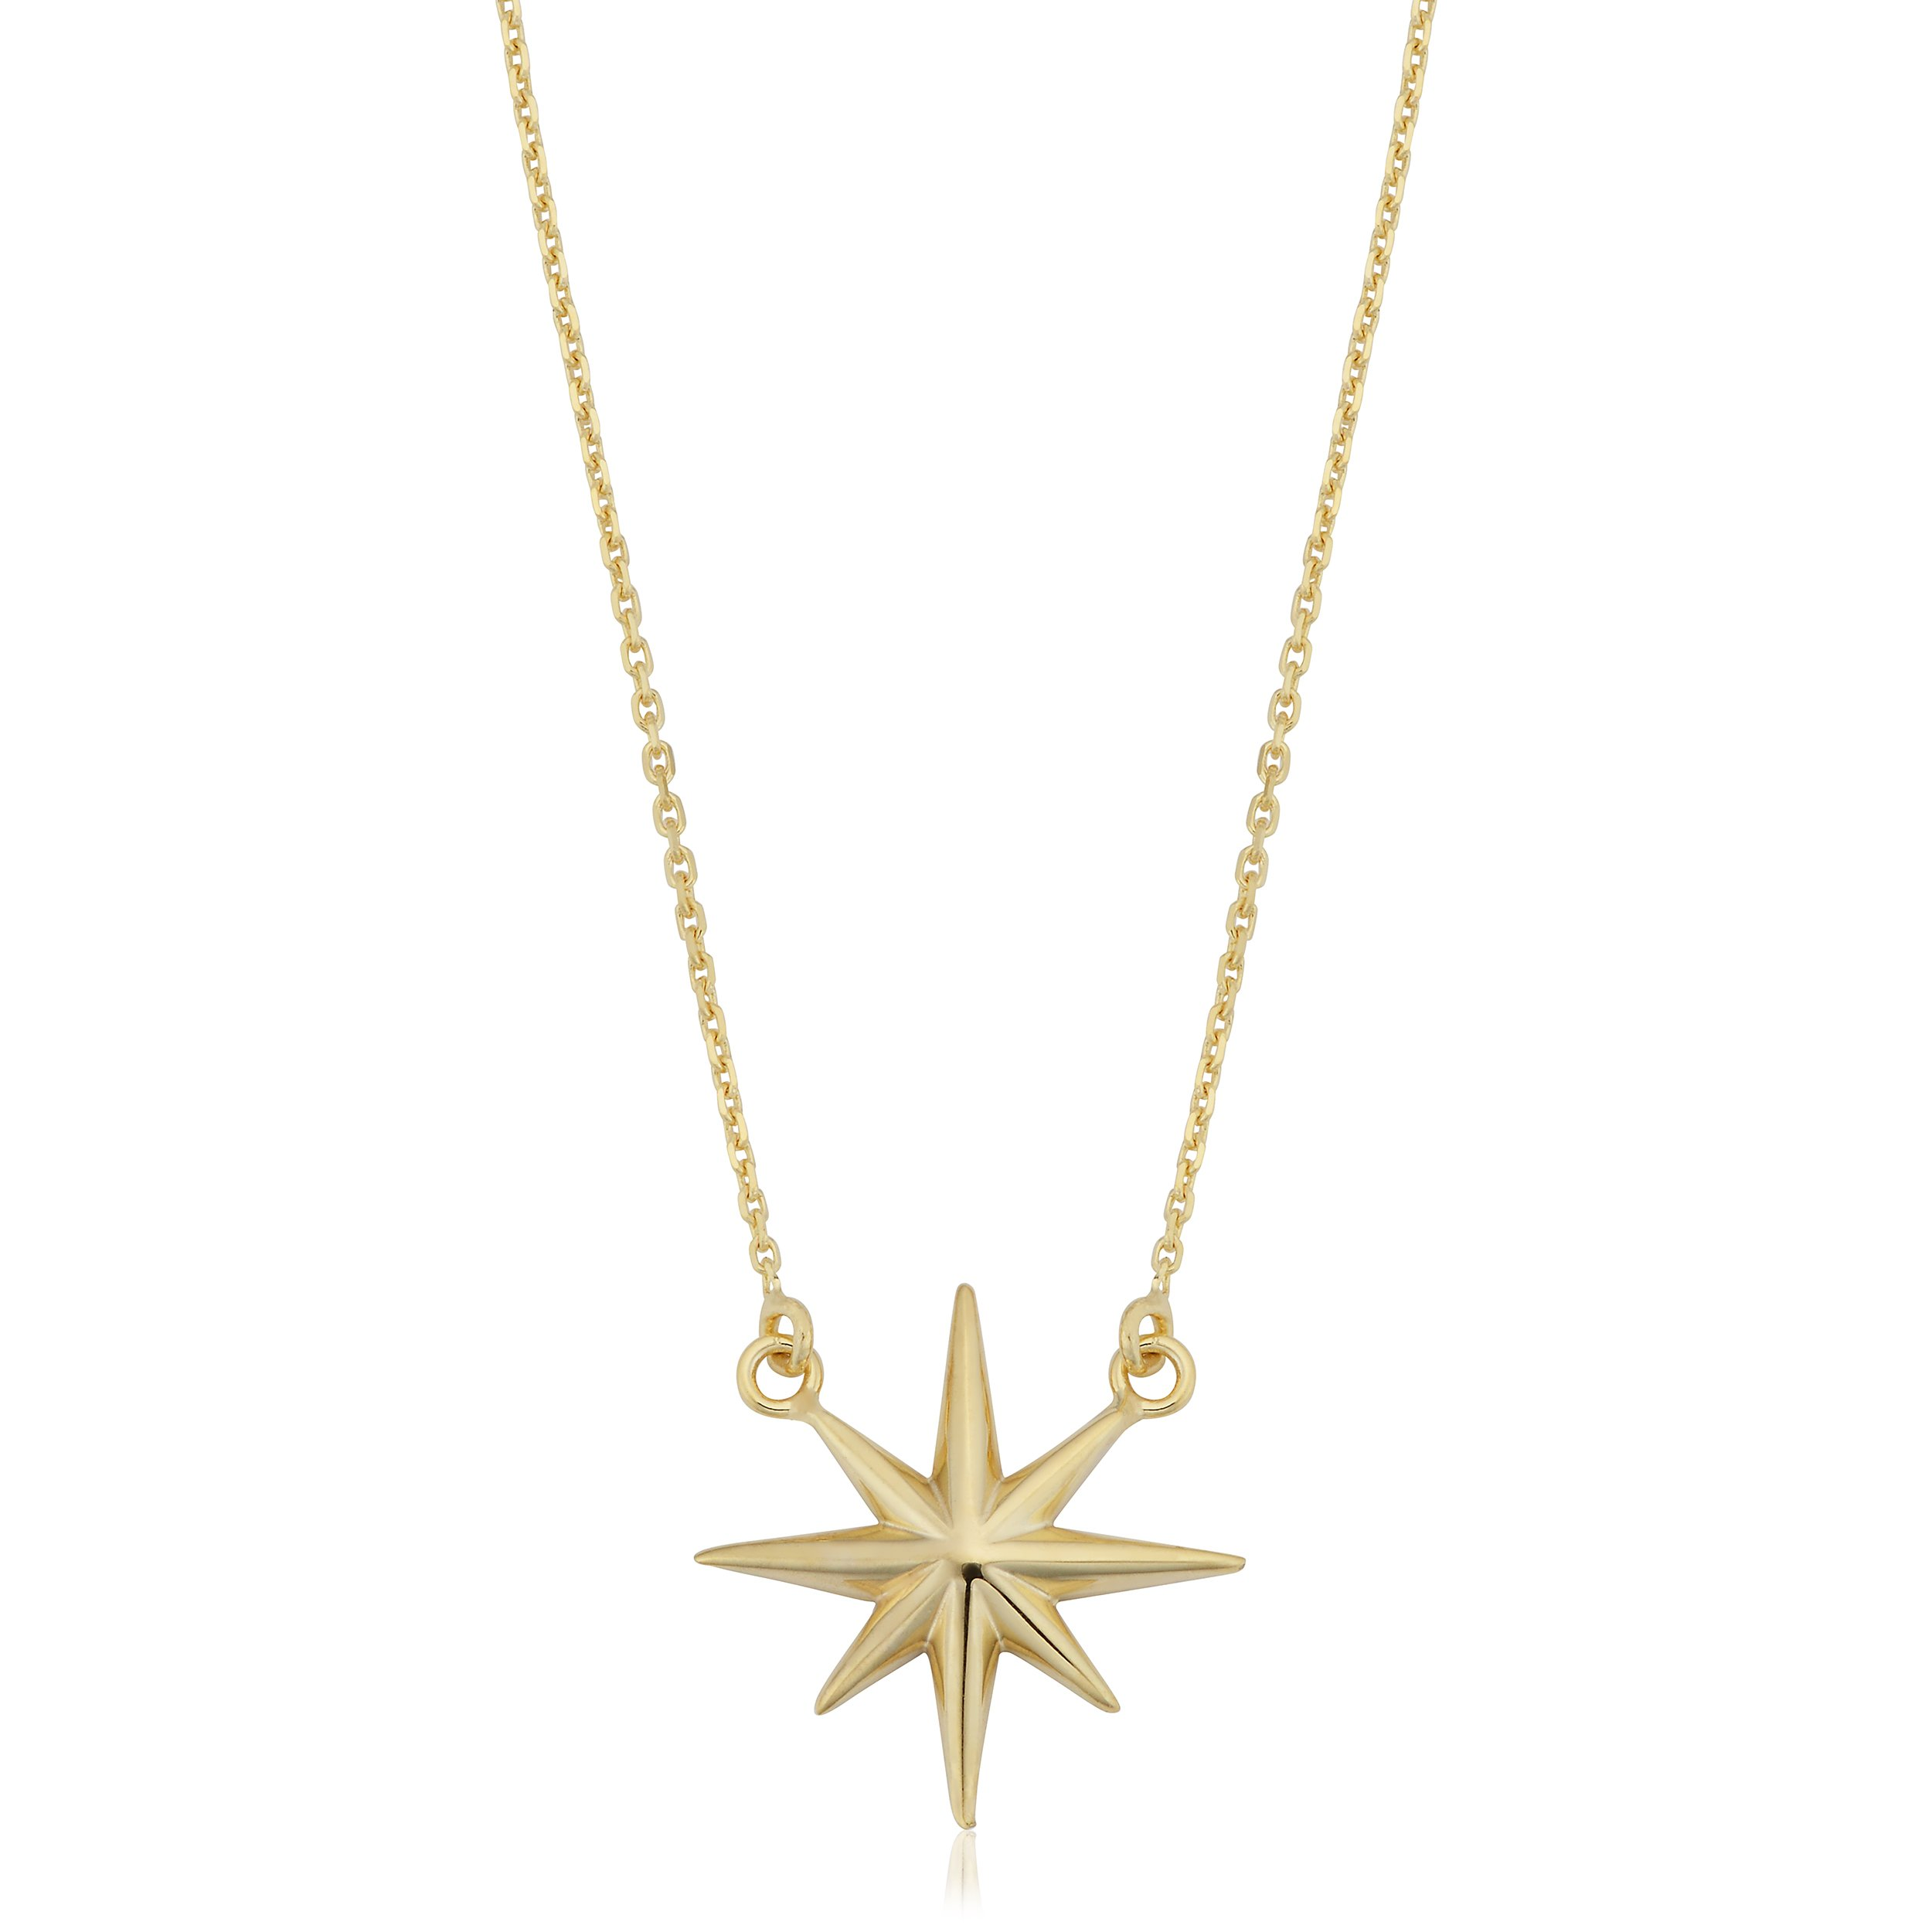 10k Yellow Gold North Star Necklace (18 inch)